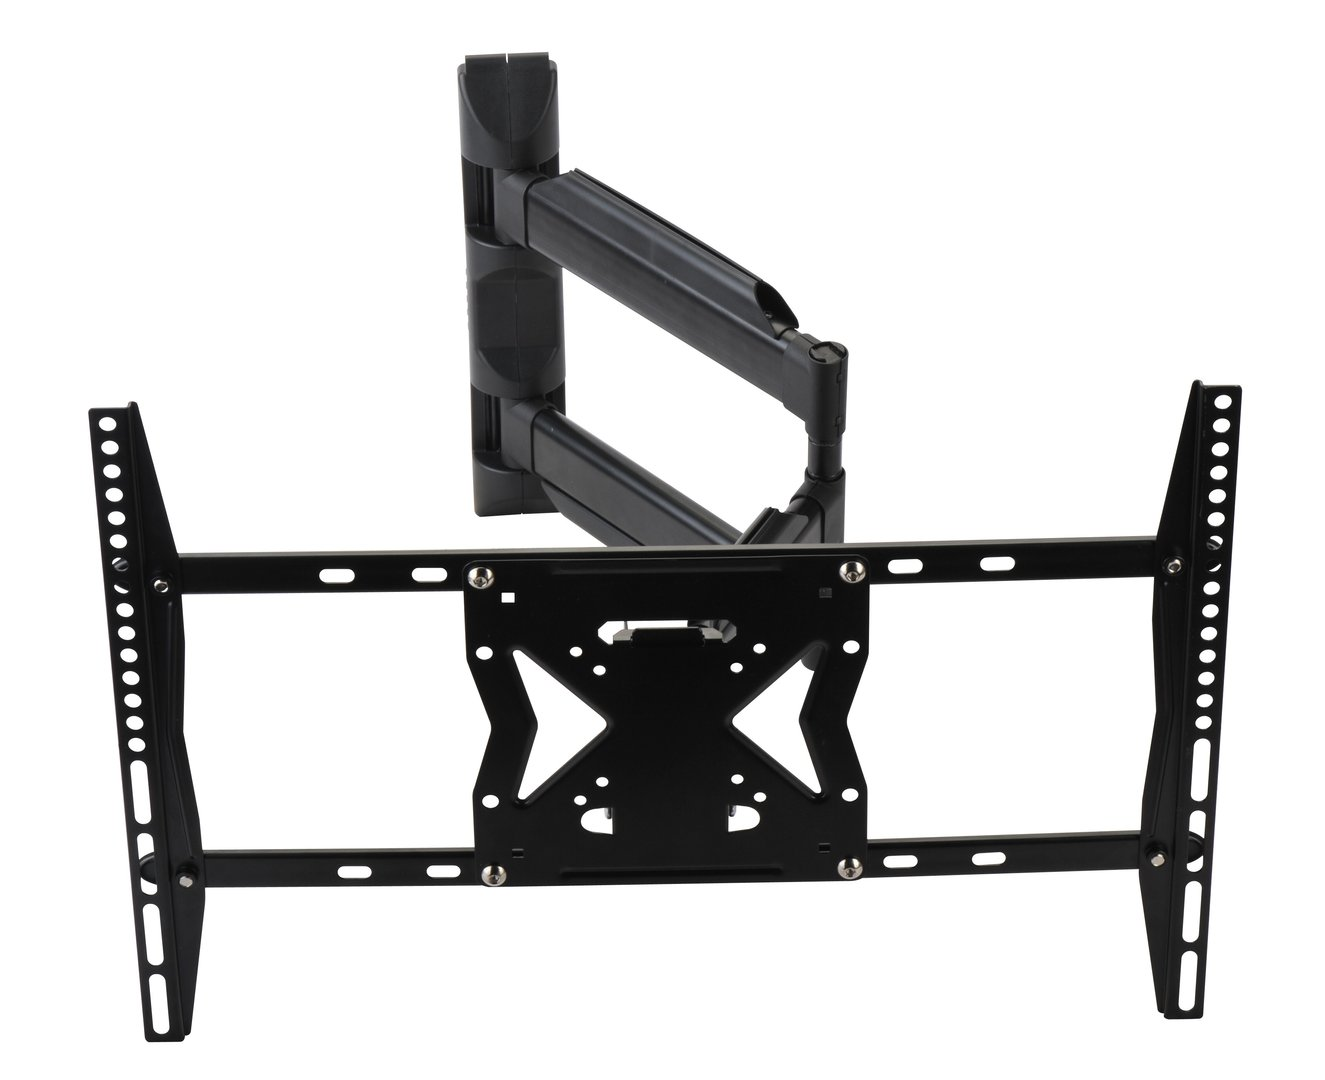 Large Ultra Slim Black LED/LCD Double Arm Swivel & Tilt TV Wall Bracket